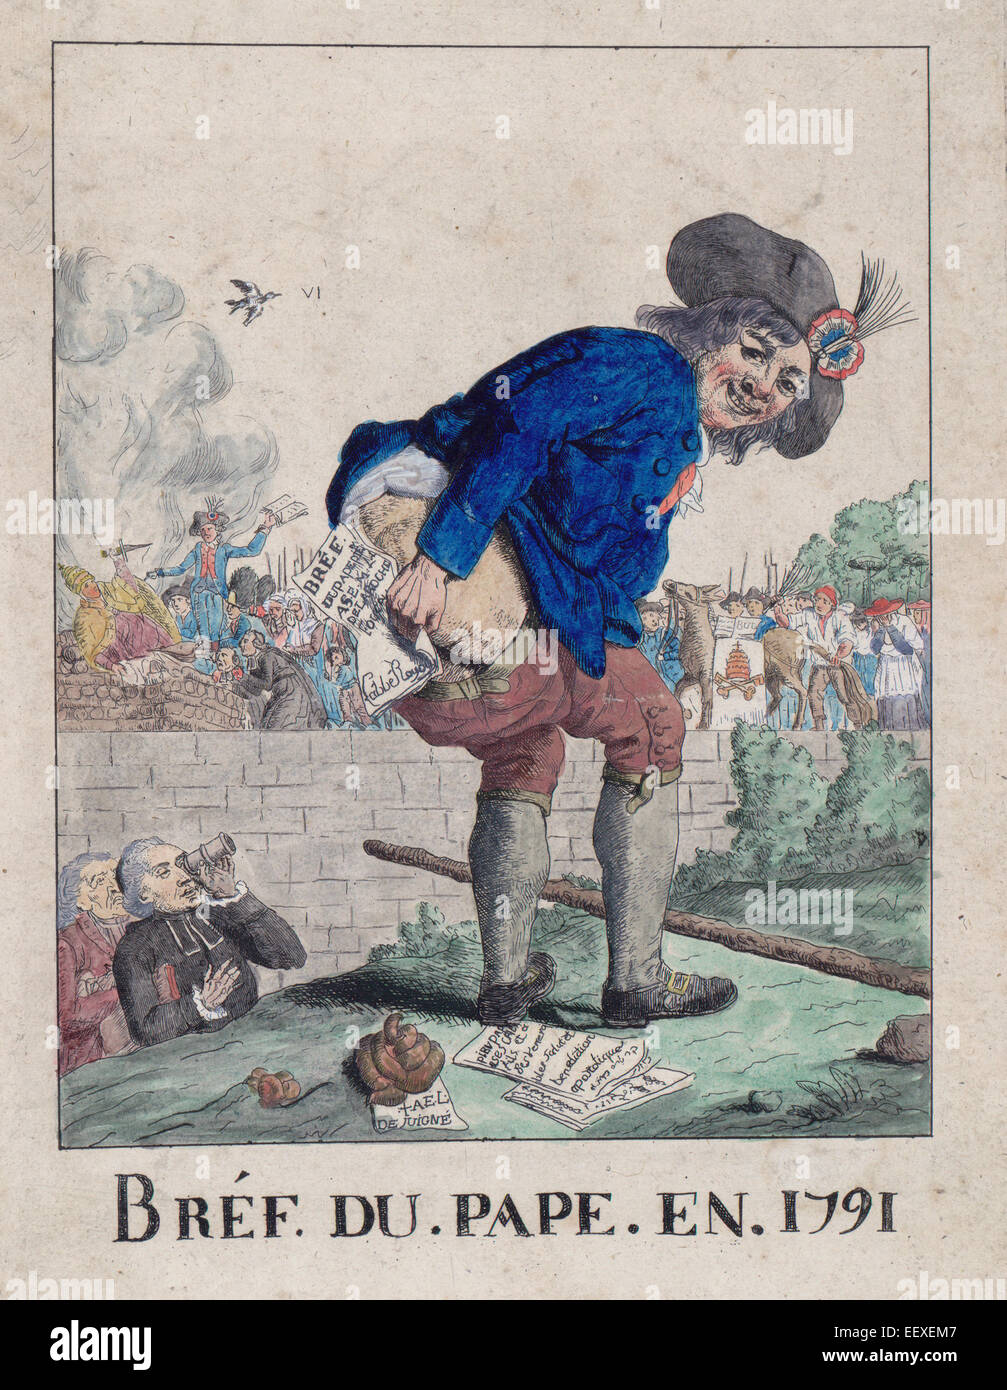 Bréf du Pape en 1791 - Summary: Print shows a member of the Third Estate, with cockade on his hat and a big - Stock Image